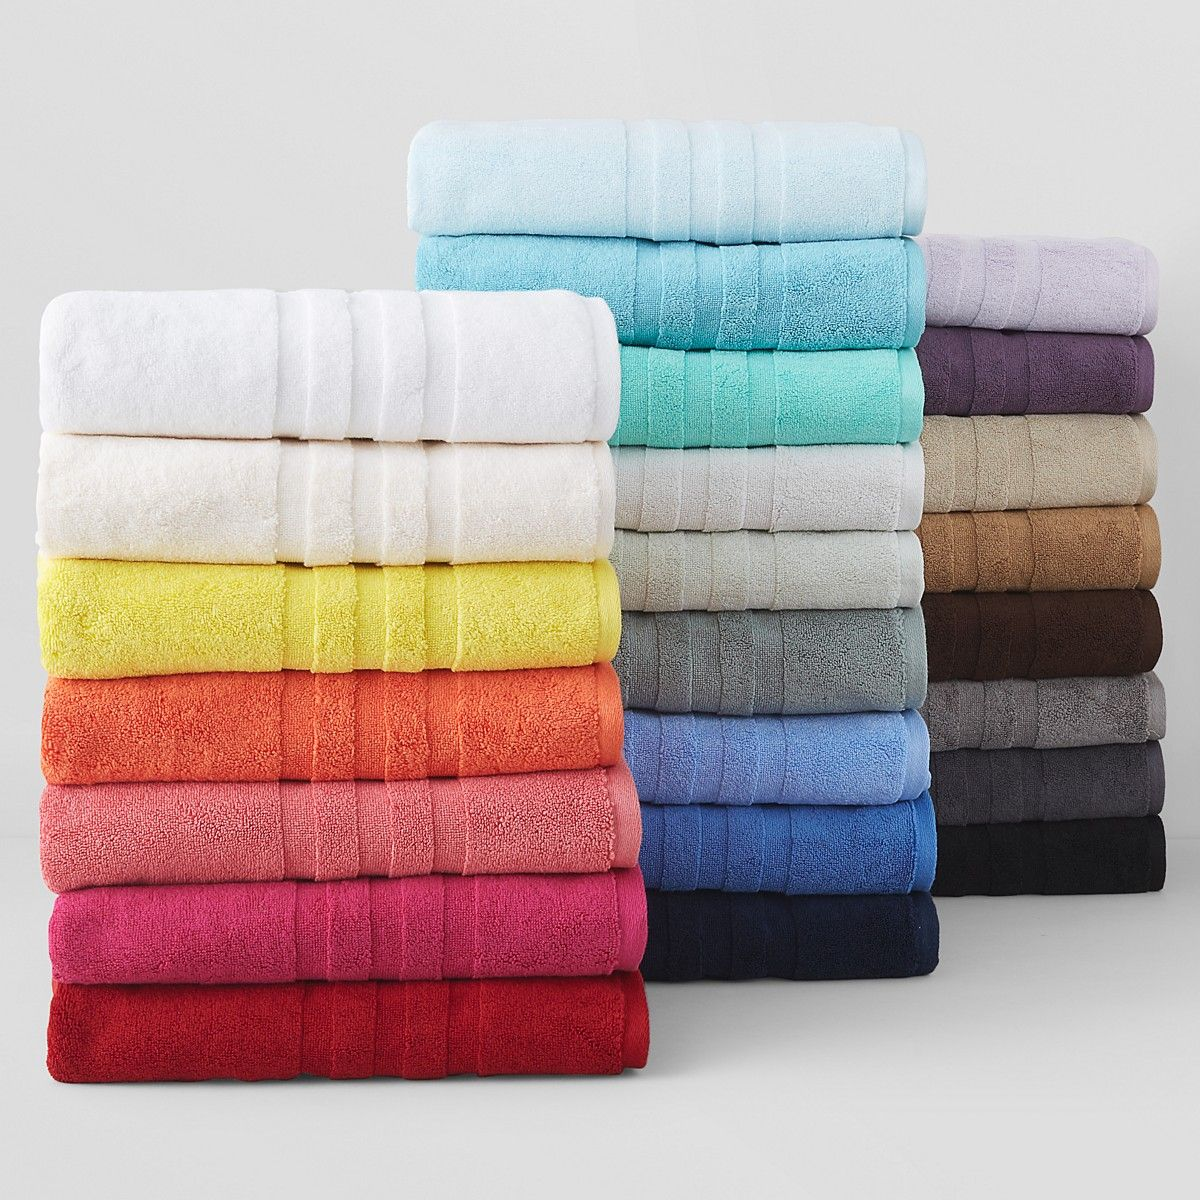 Ralph Lauren Bath Sheet Inspiration Ralph Lauren Palmer Towels  Lk  Pinterest  Towels Bath And Bath 2018